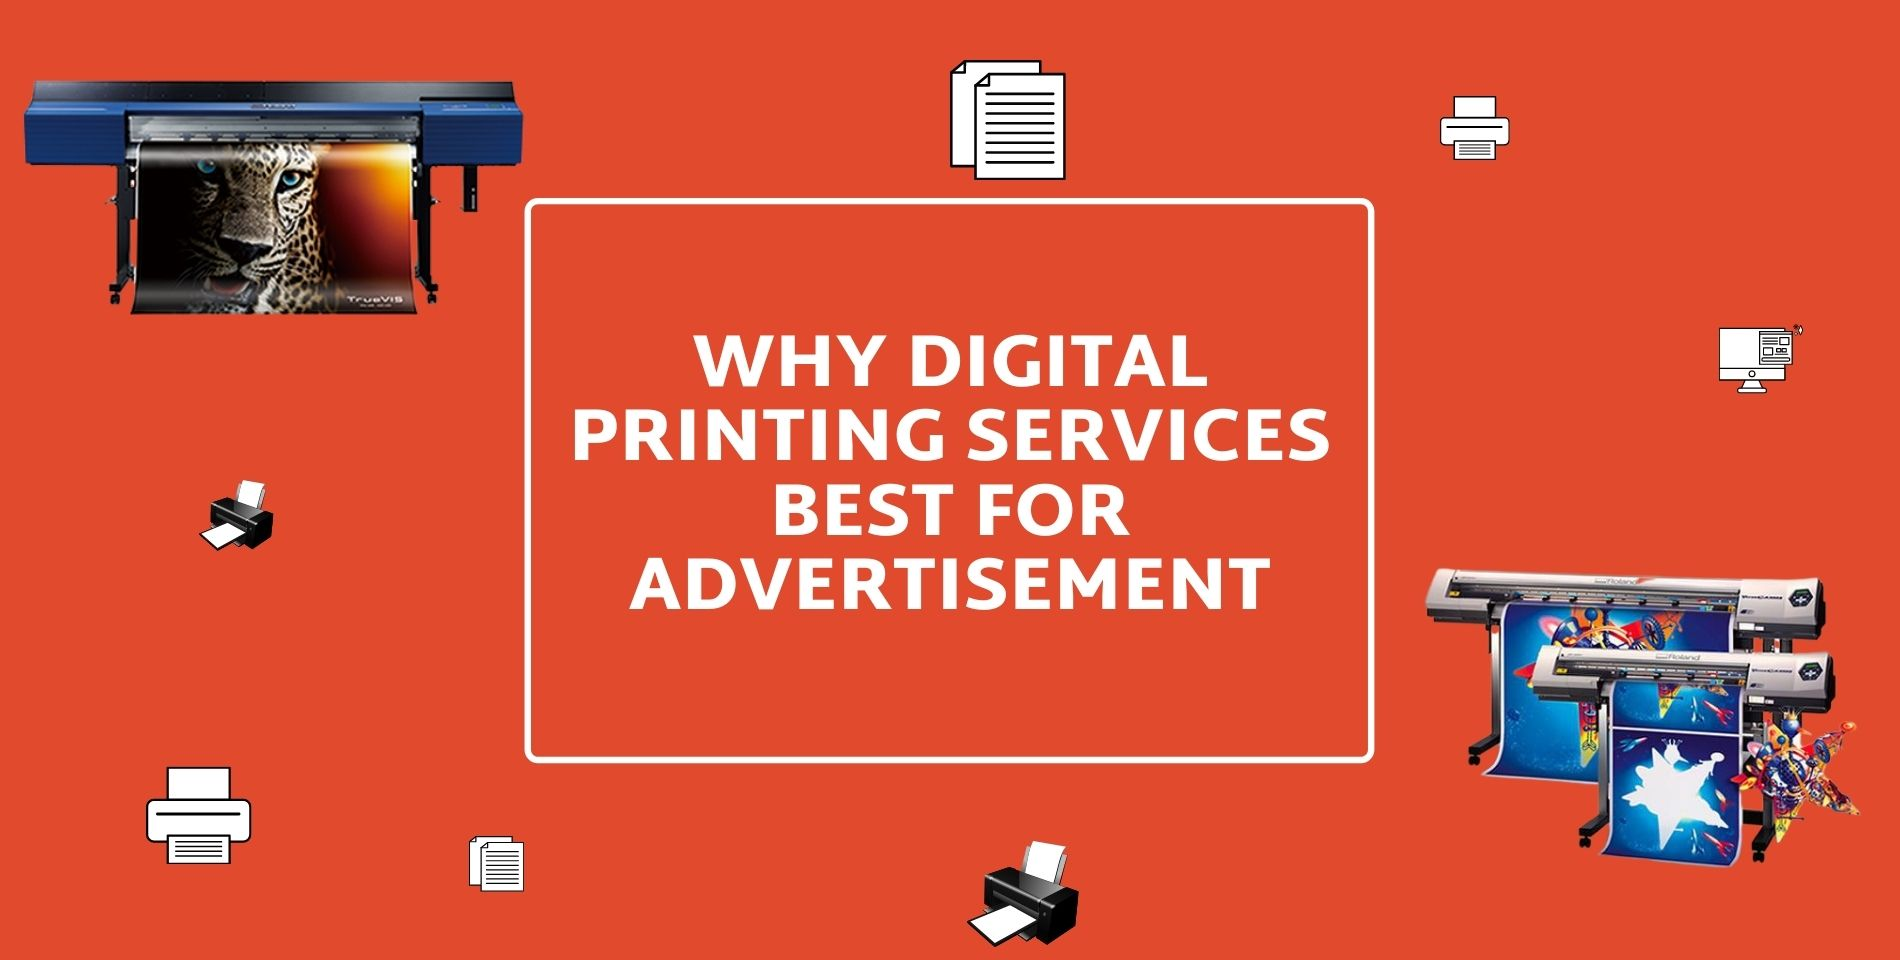 Why Digital Printing Services Best For Advertisement